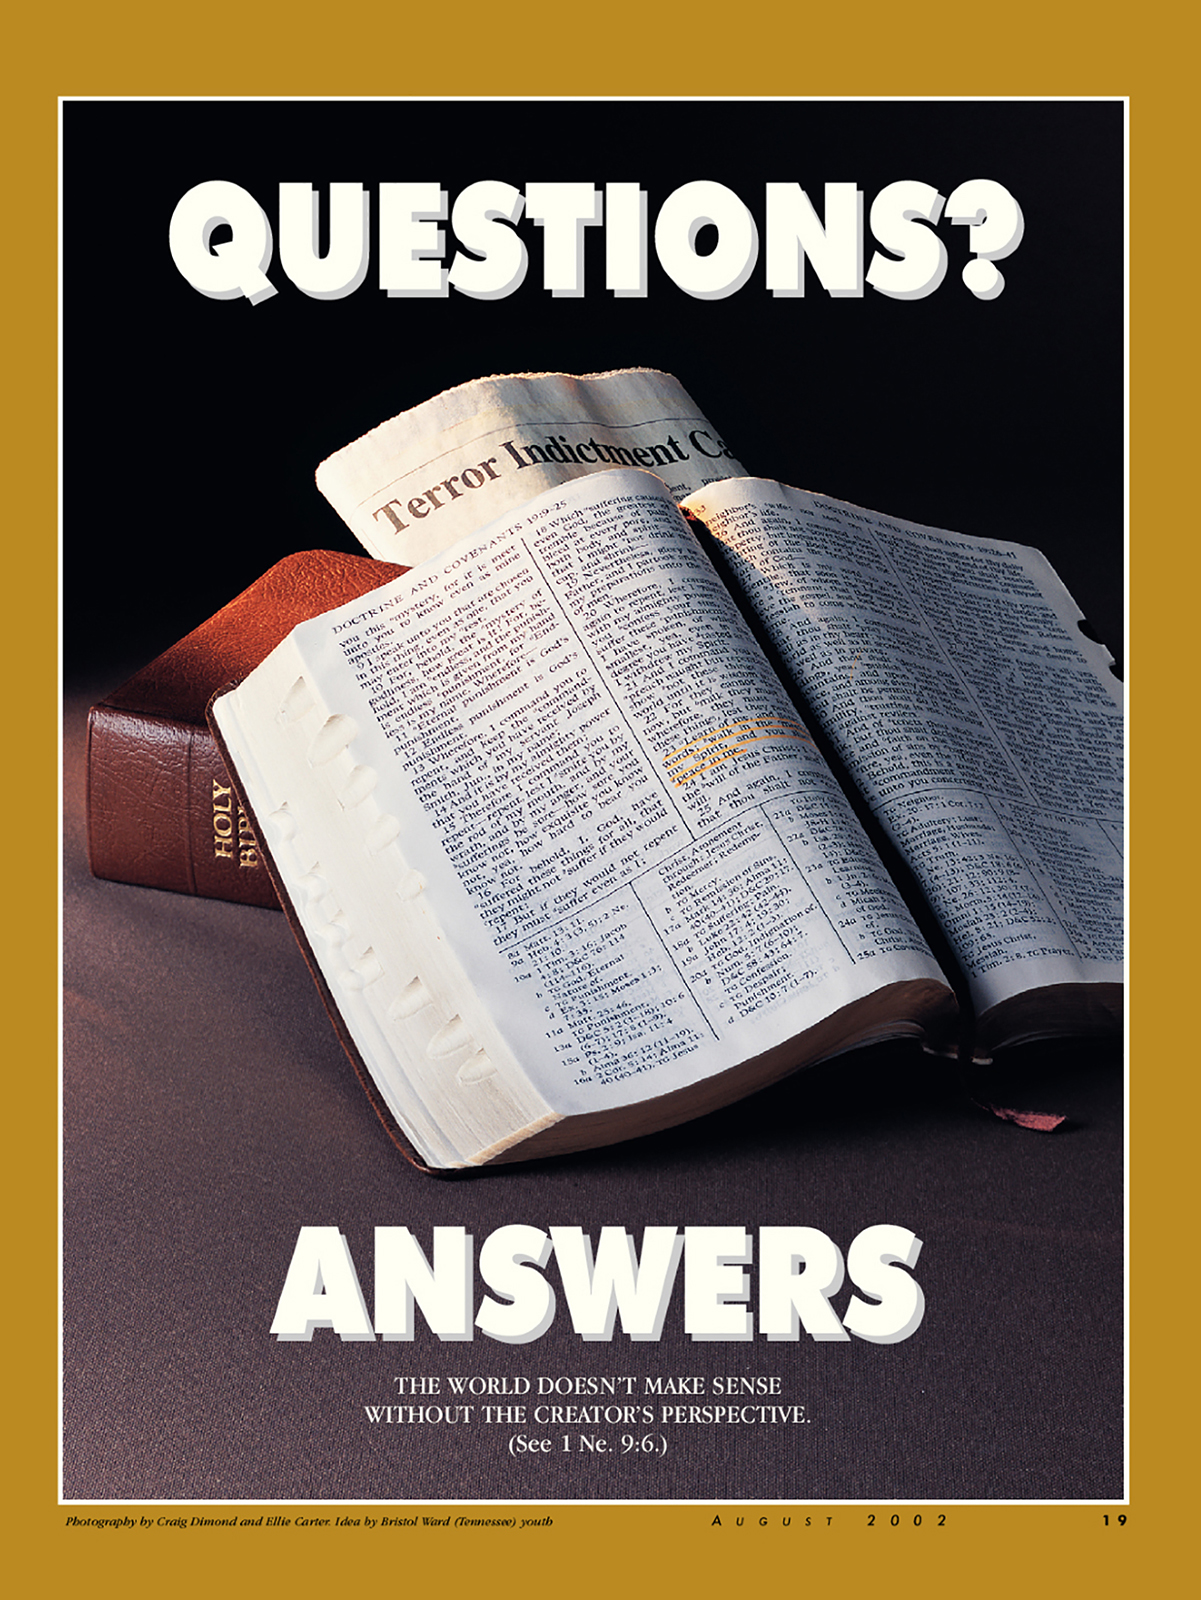 All The Answers Are in the Religious Teachings